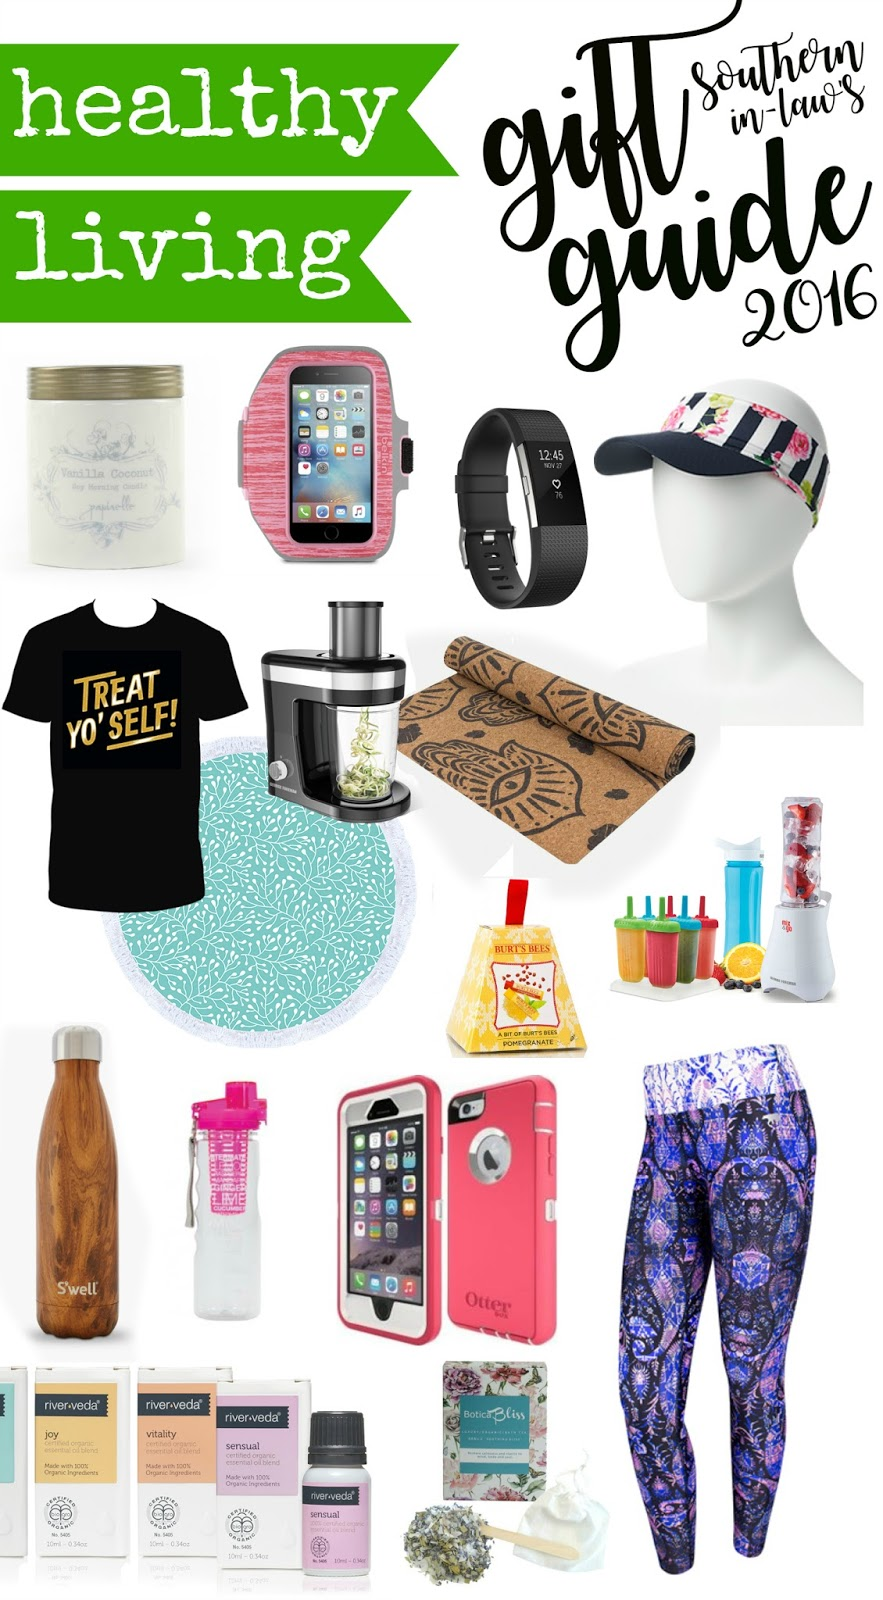 Southern In Law: 2016 Healthy Living Gift Guide